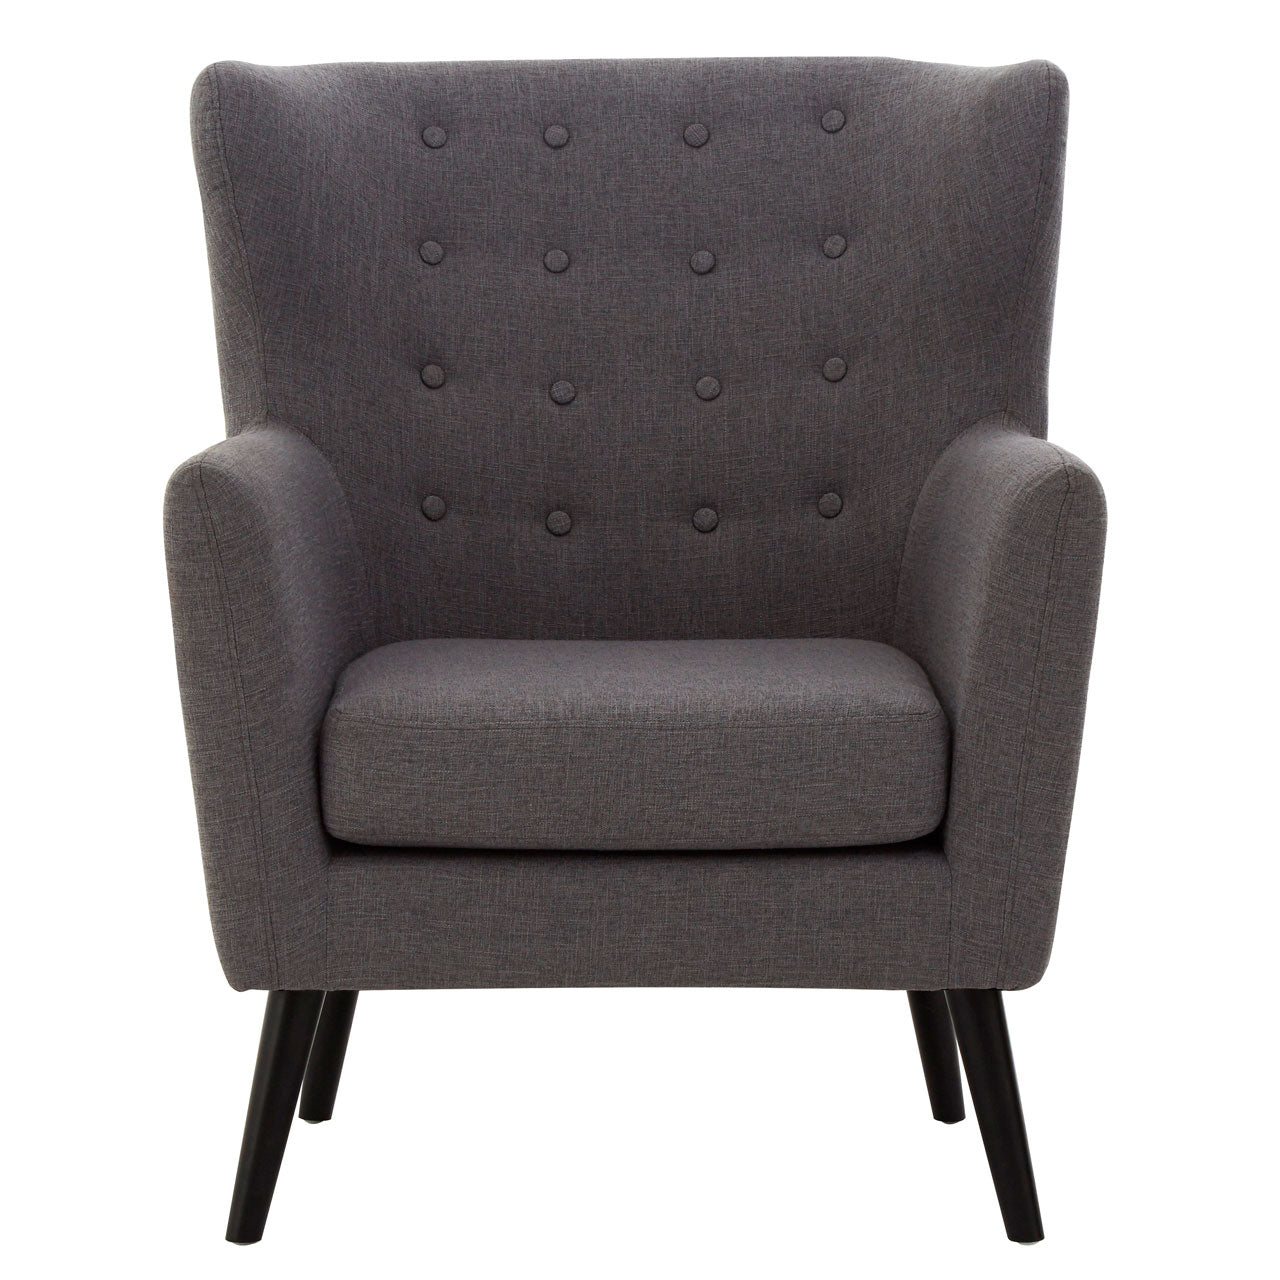 Odense Armchair in Grey